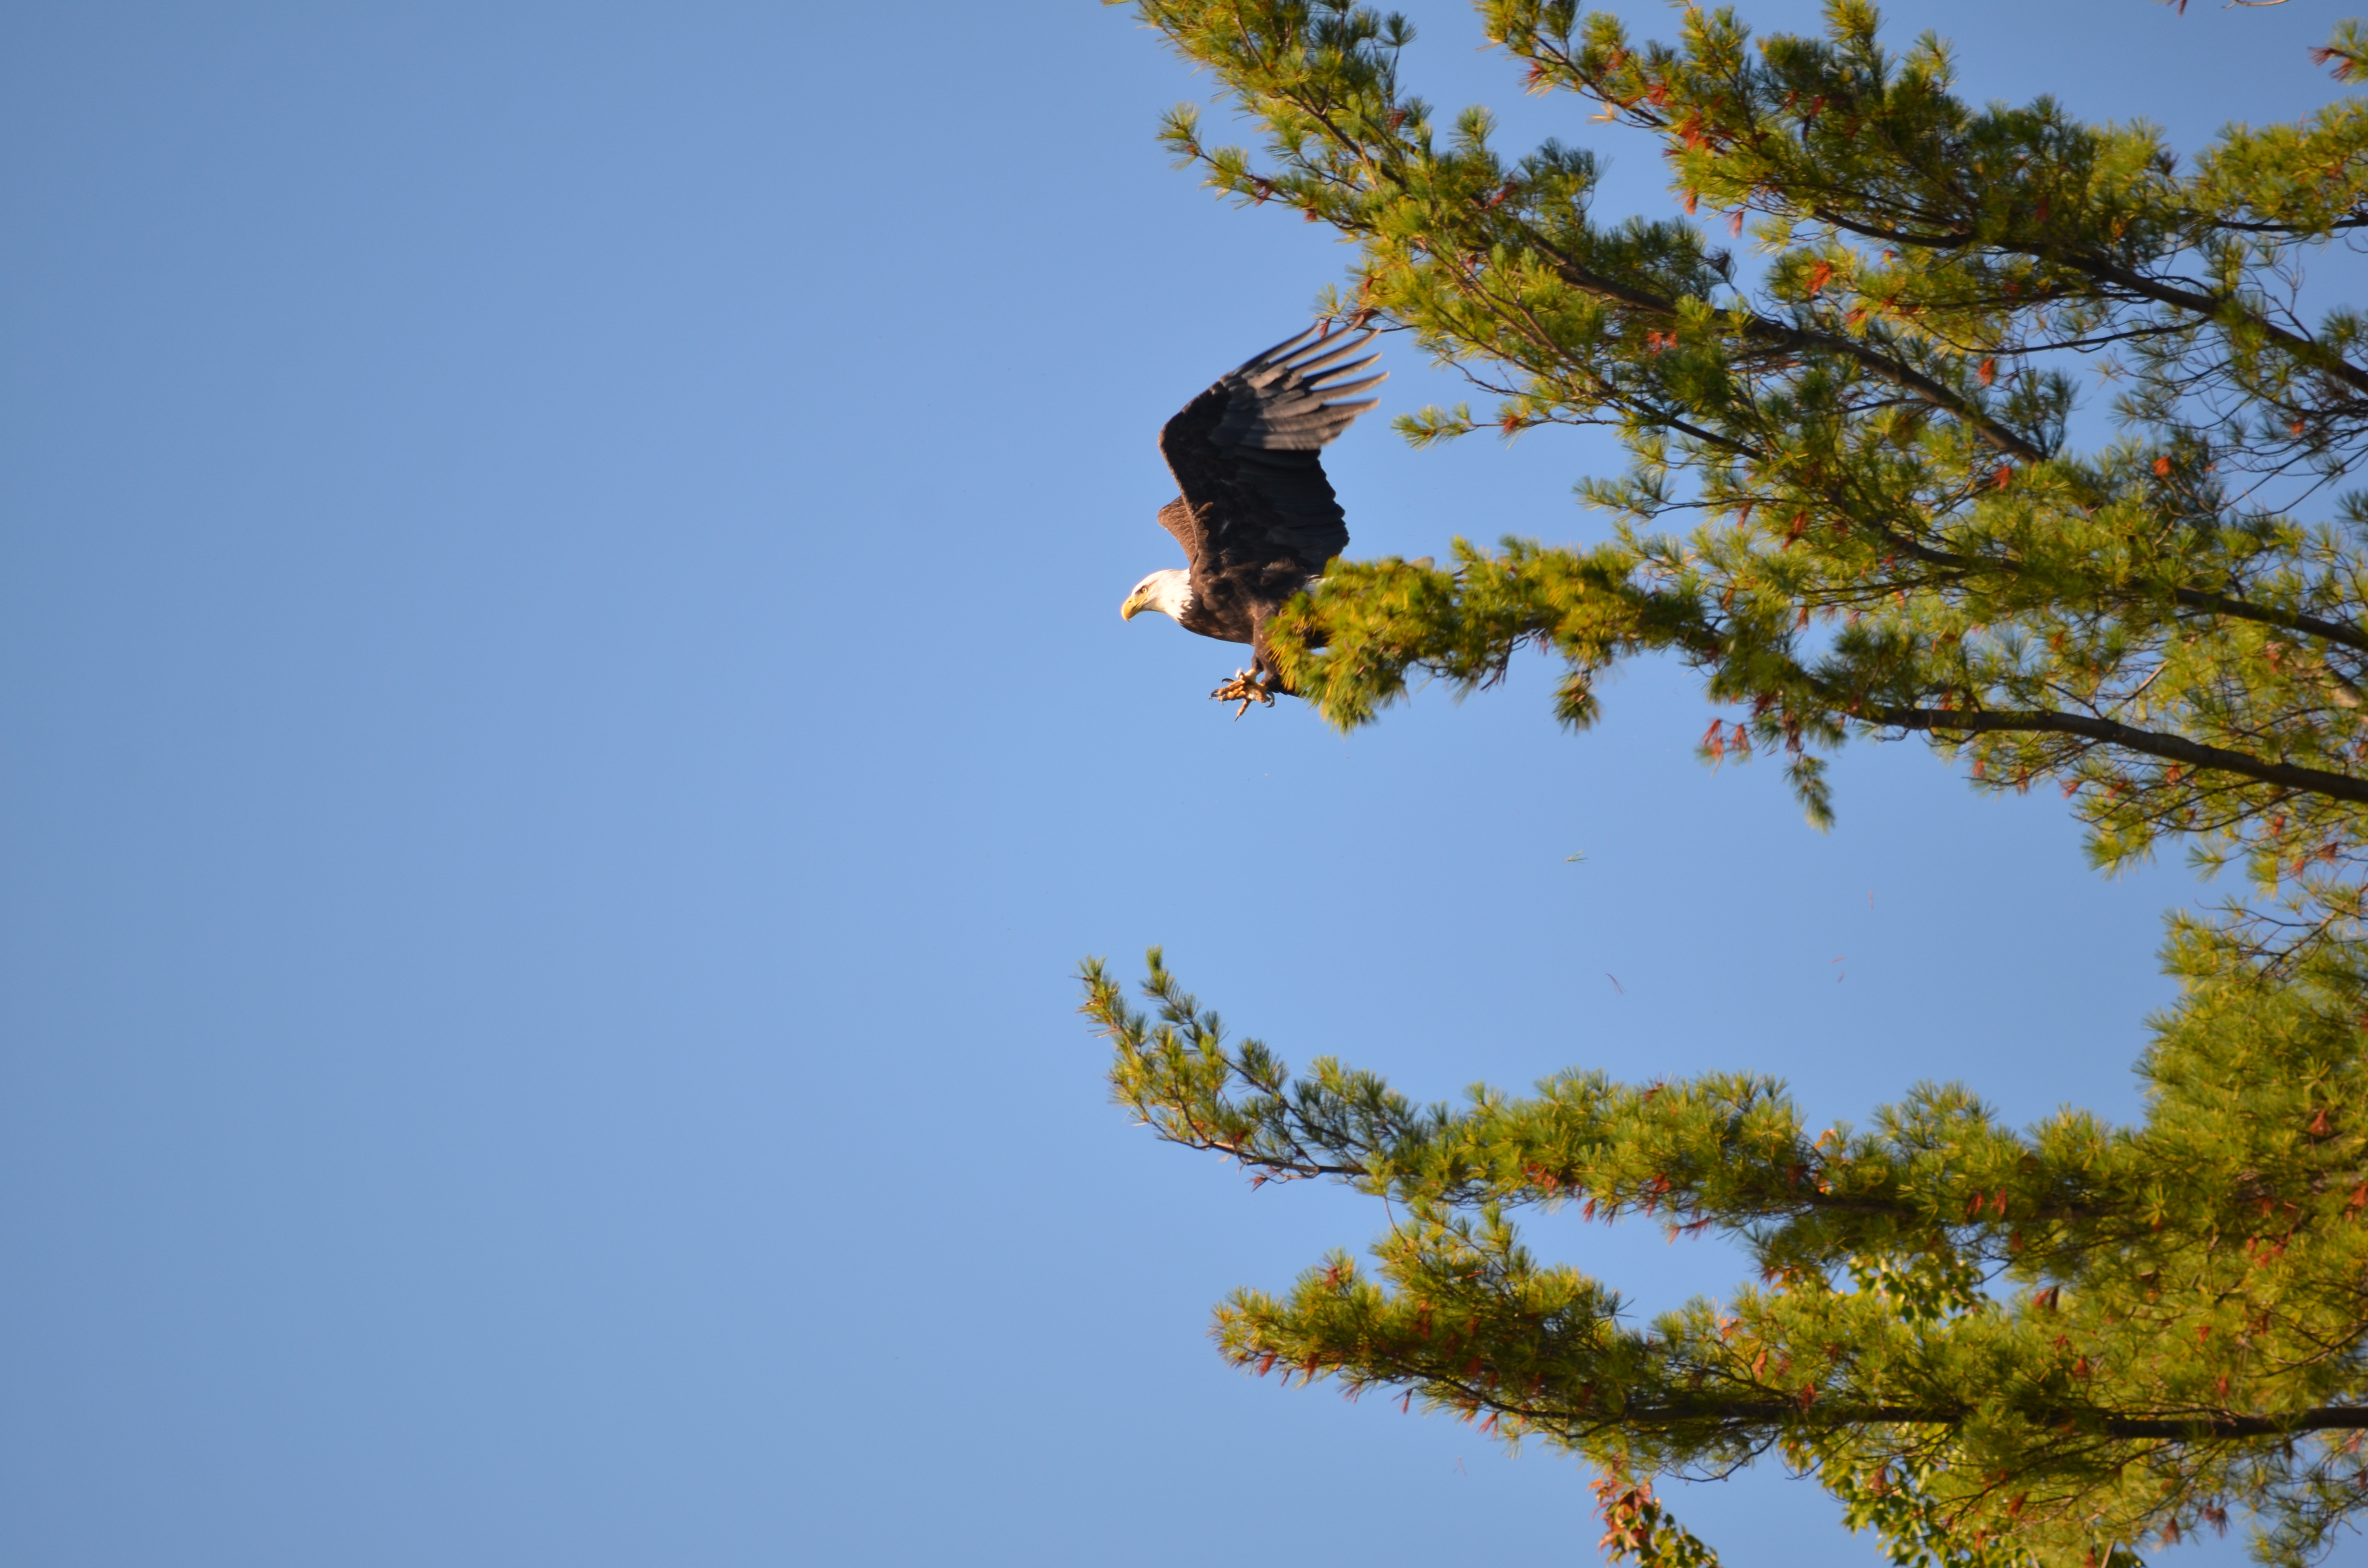 Bald Eagle About to Fly Near 125 Windermere Road, Moultonborough, NH